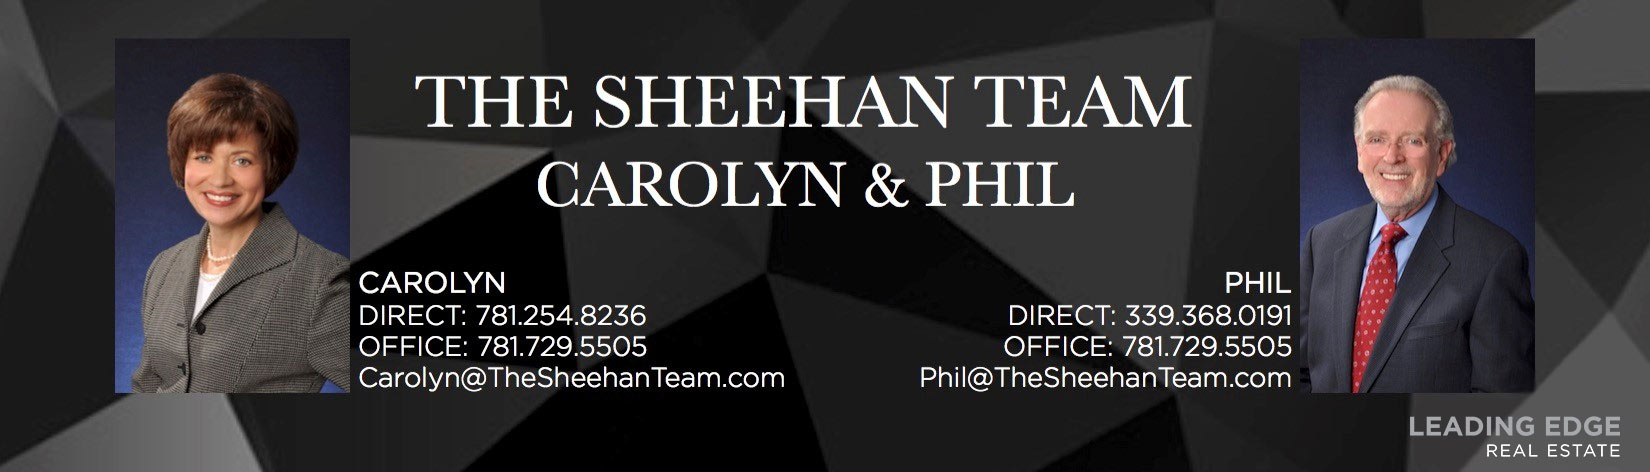 Carolyn and Phil Sheehan, The Sheehan Team, of Leading Edge Real Estate work with buyers and sellers in Massachusetts.